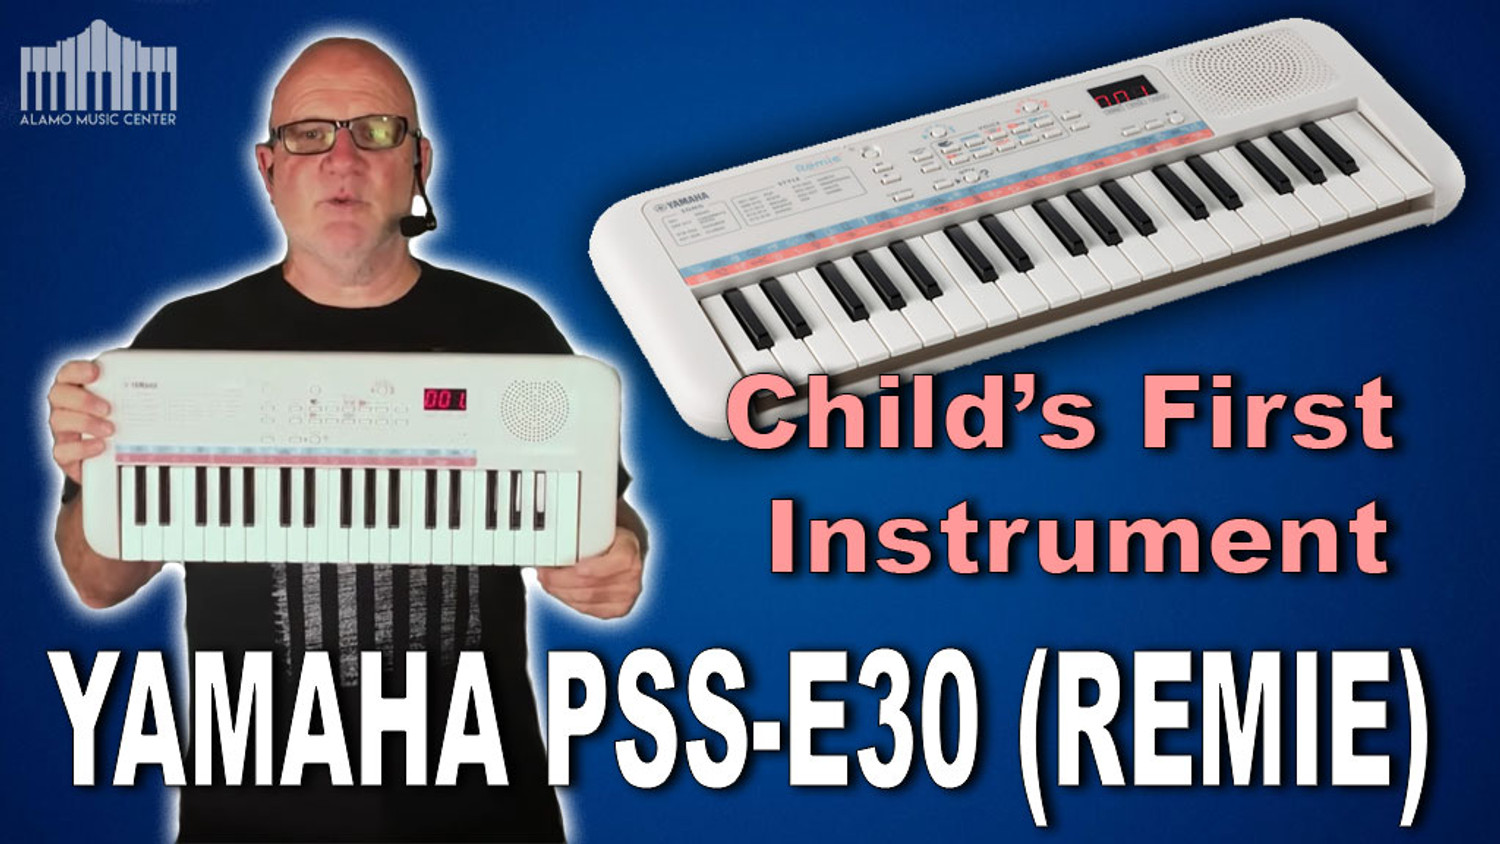 Yamaha REMIE PSS-E30 Portable Keyboard | The Happy Keyboard for Children